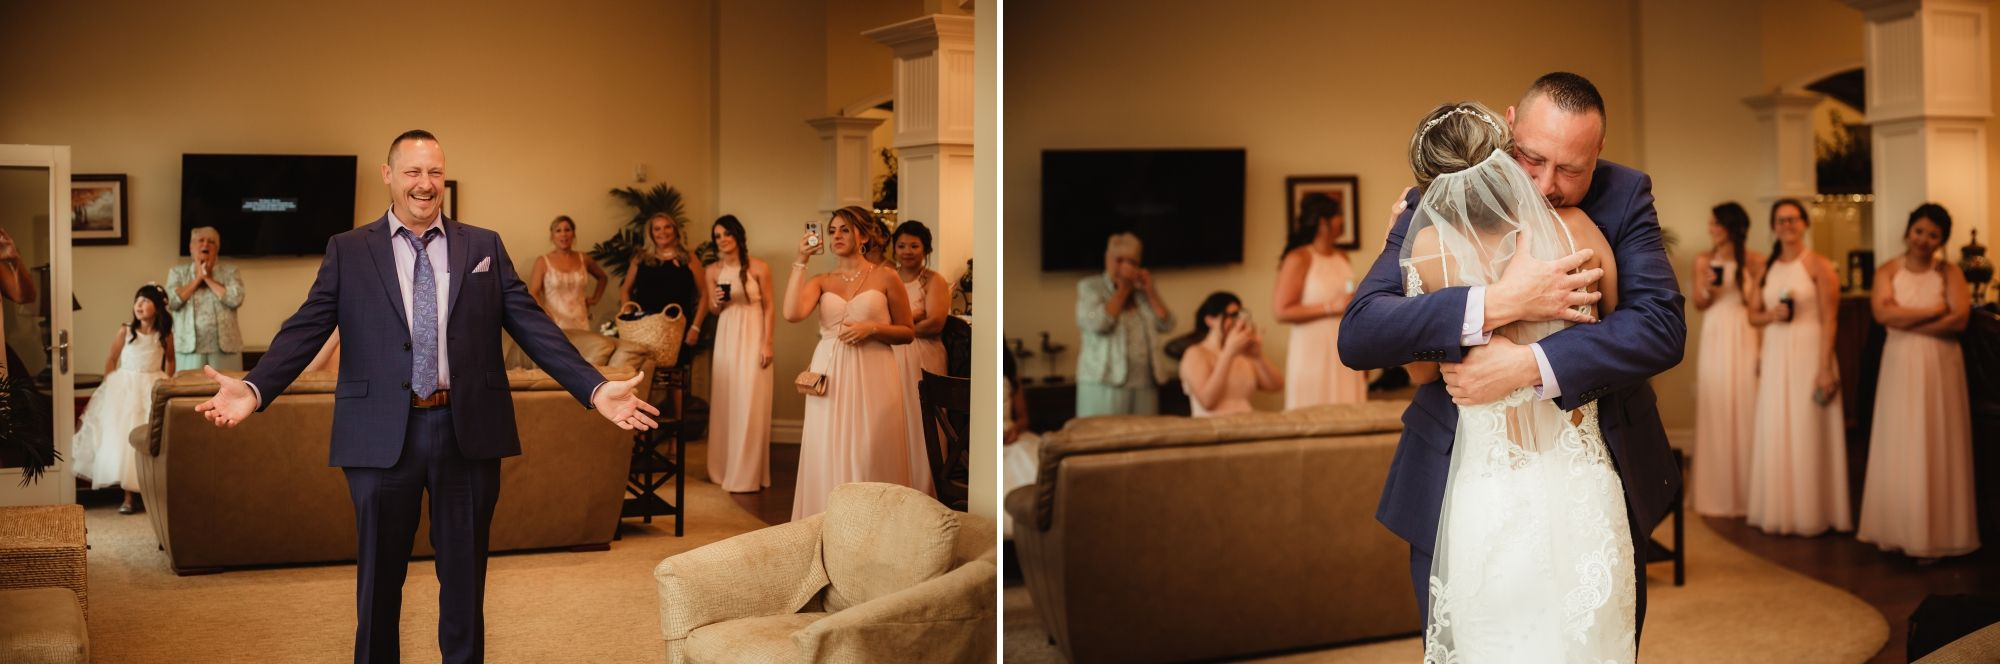 Photos of a dad seeing his daughter as a bride for the first look. He smiles then they hug.